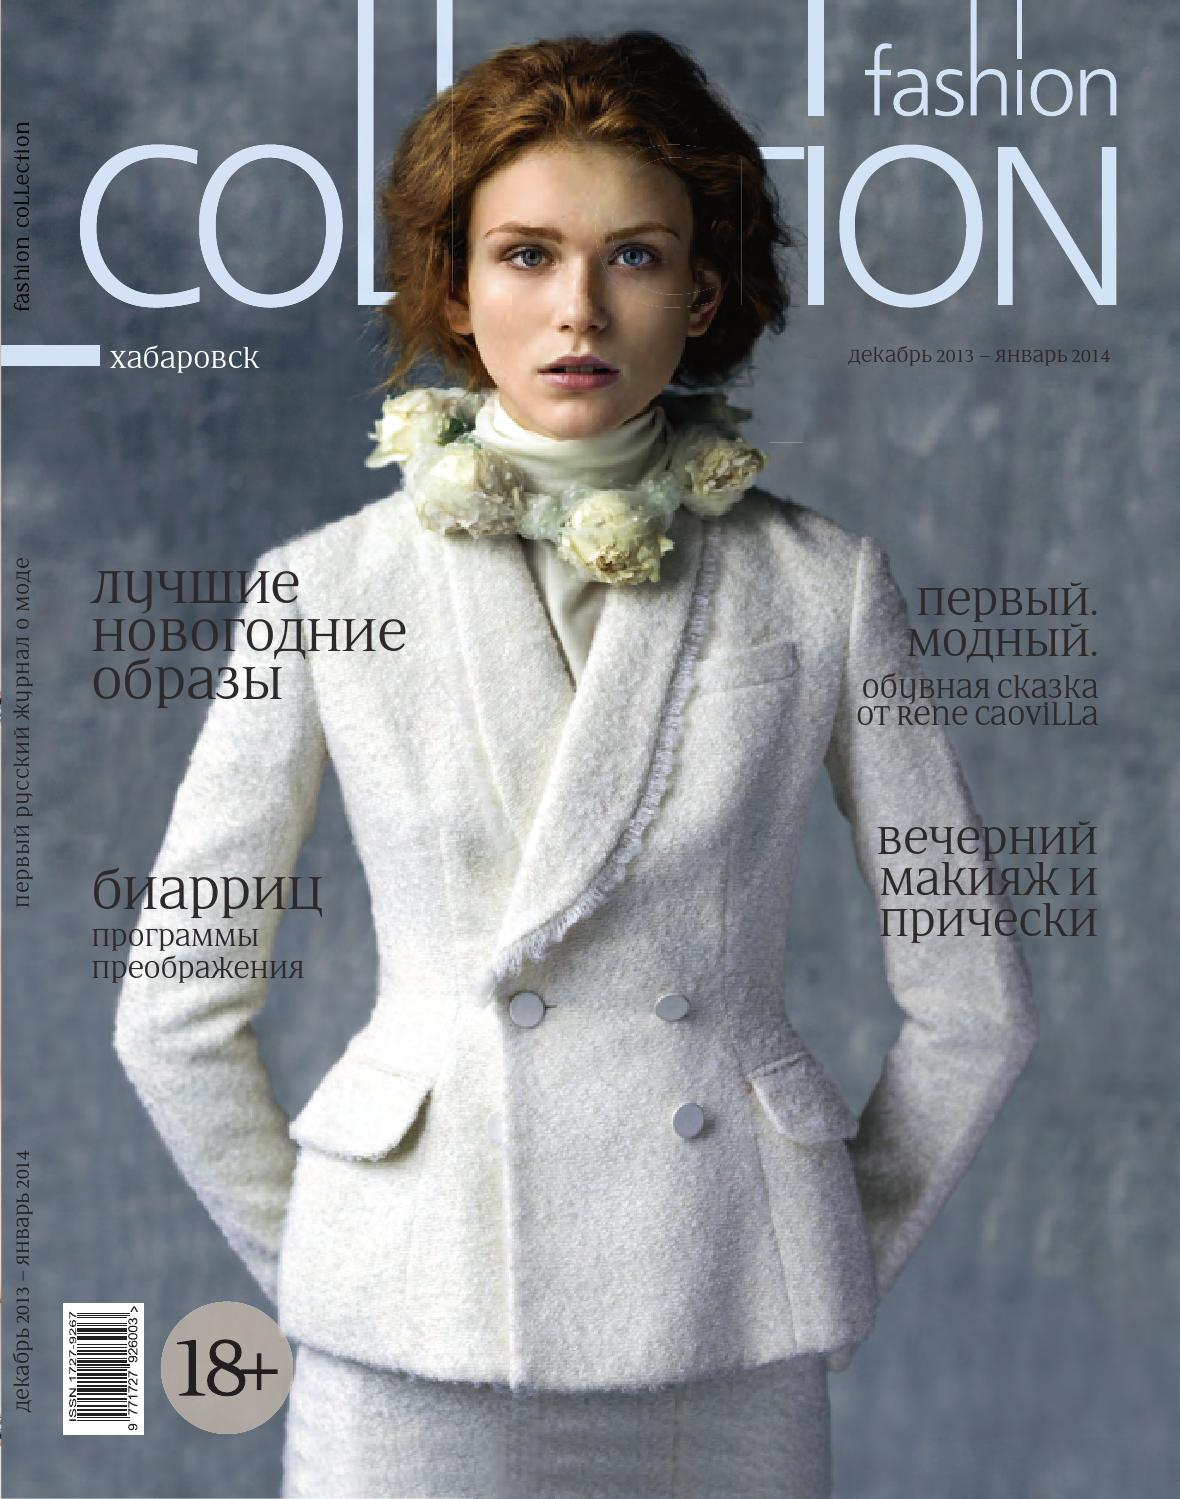 80892f0c7f4 Fashion Collection Хабаровск №102 by Журнал о моде «Fashion Collection  Хабаровск» - issuu